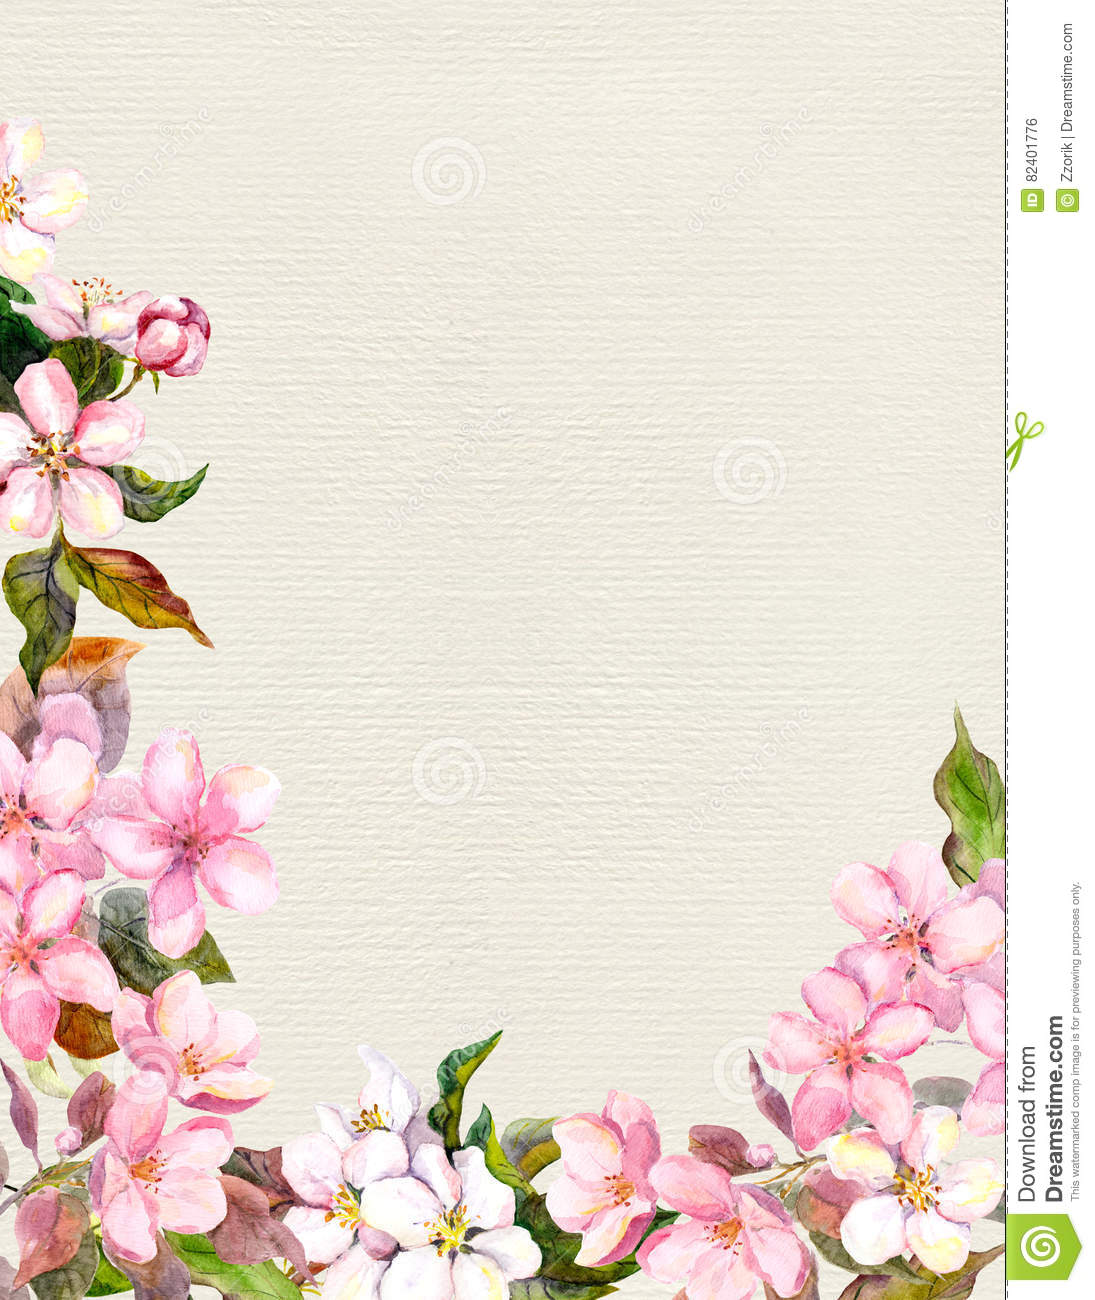 Flores cor de rosa ma flor de cerejeira frame floral for S design photo